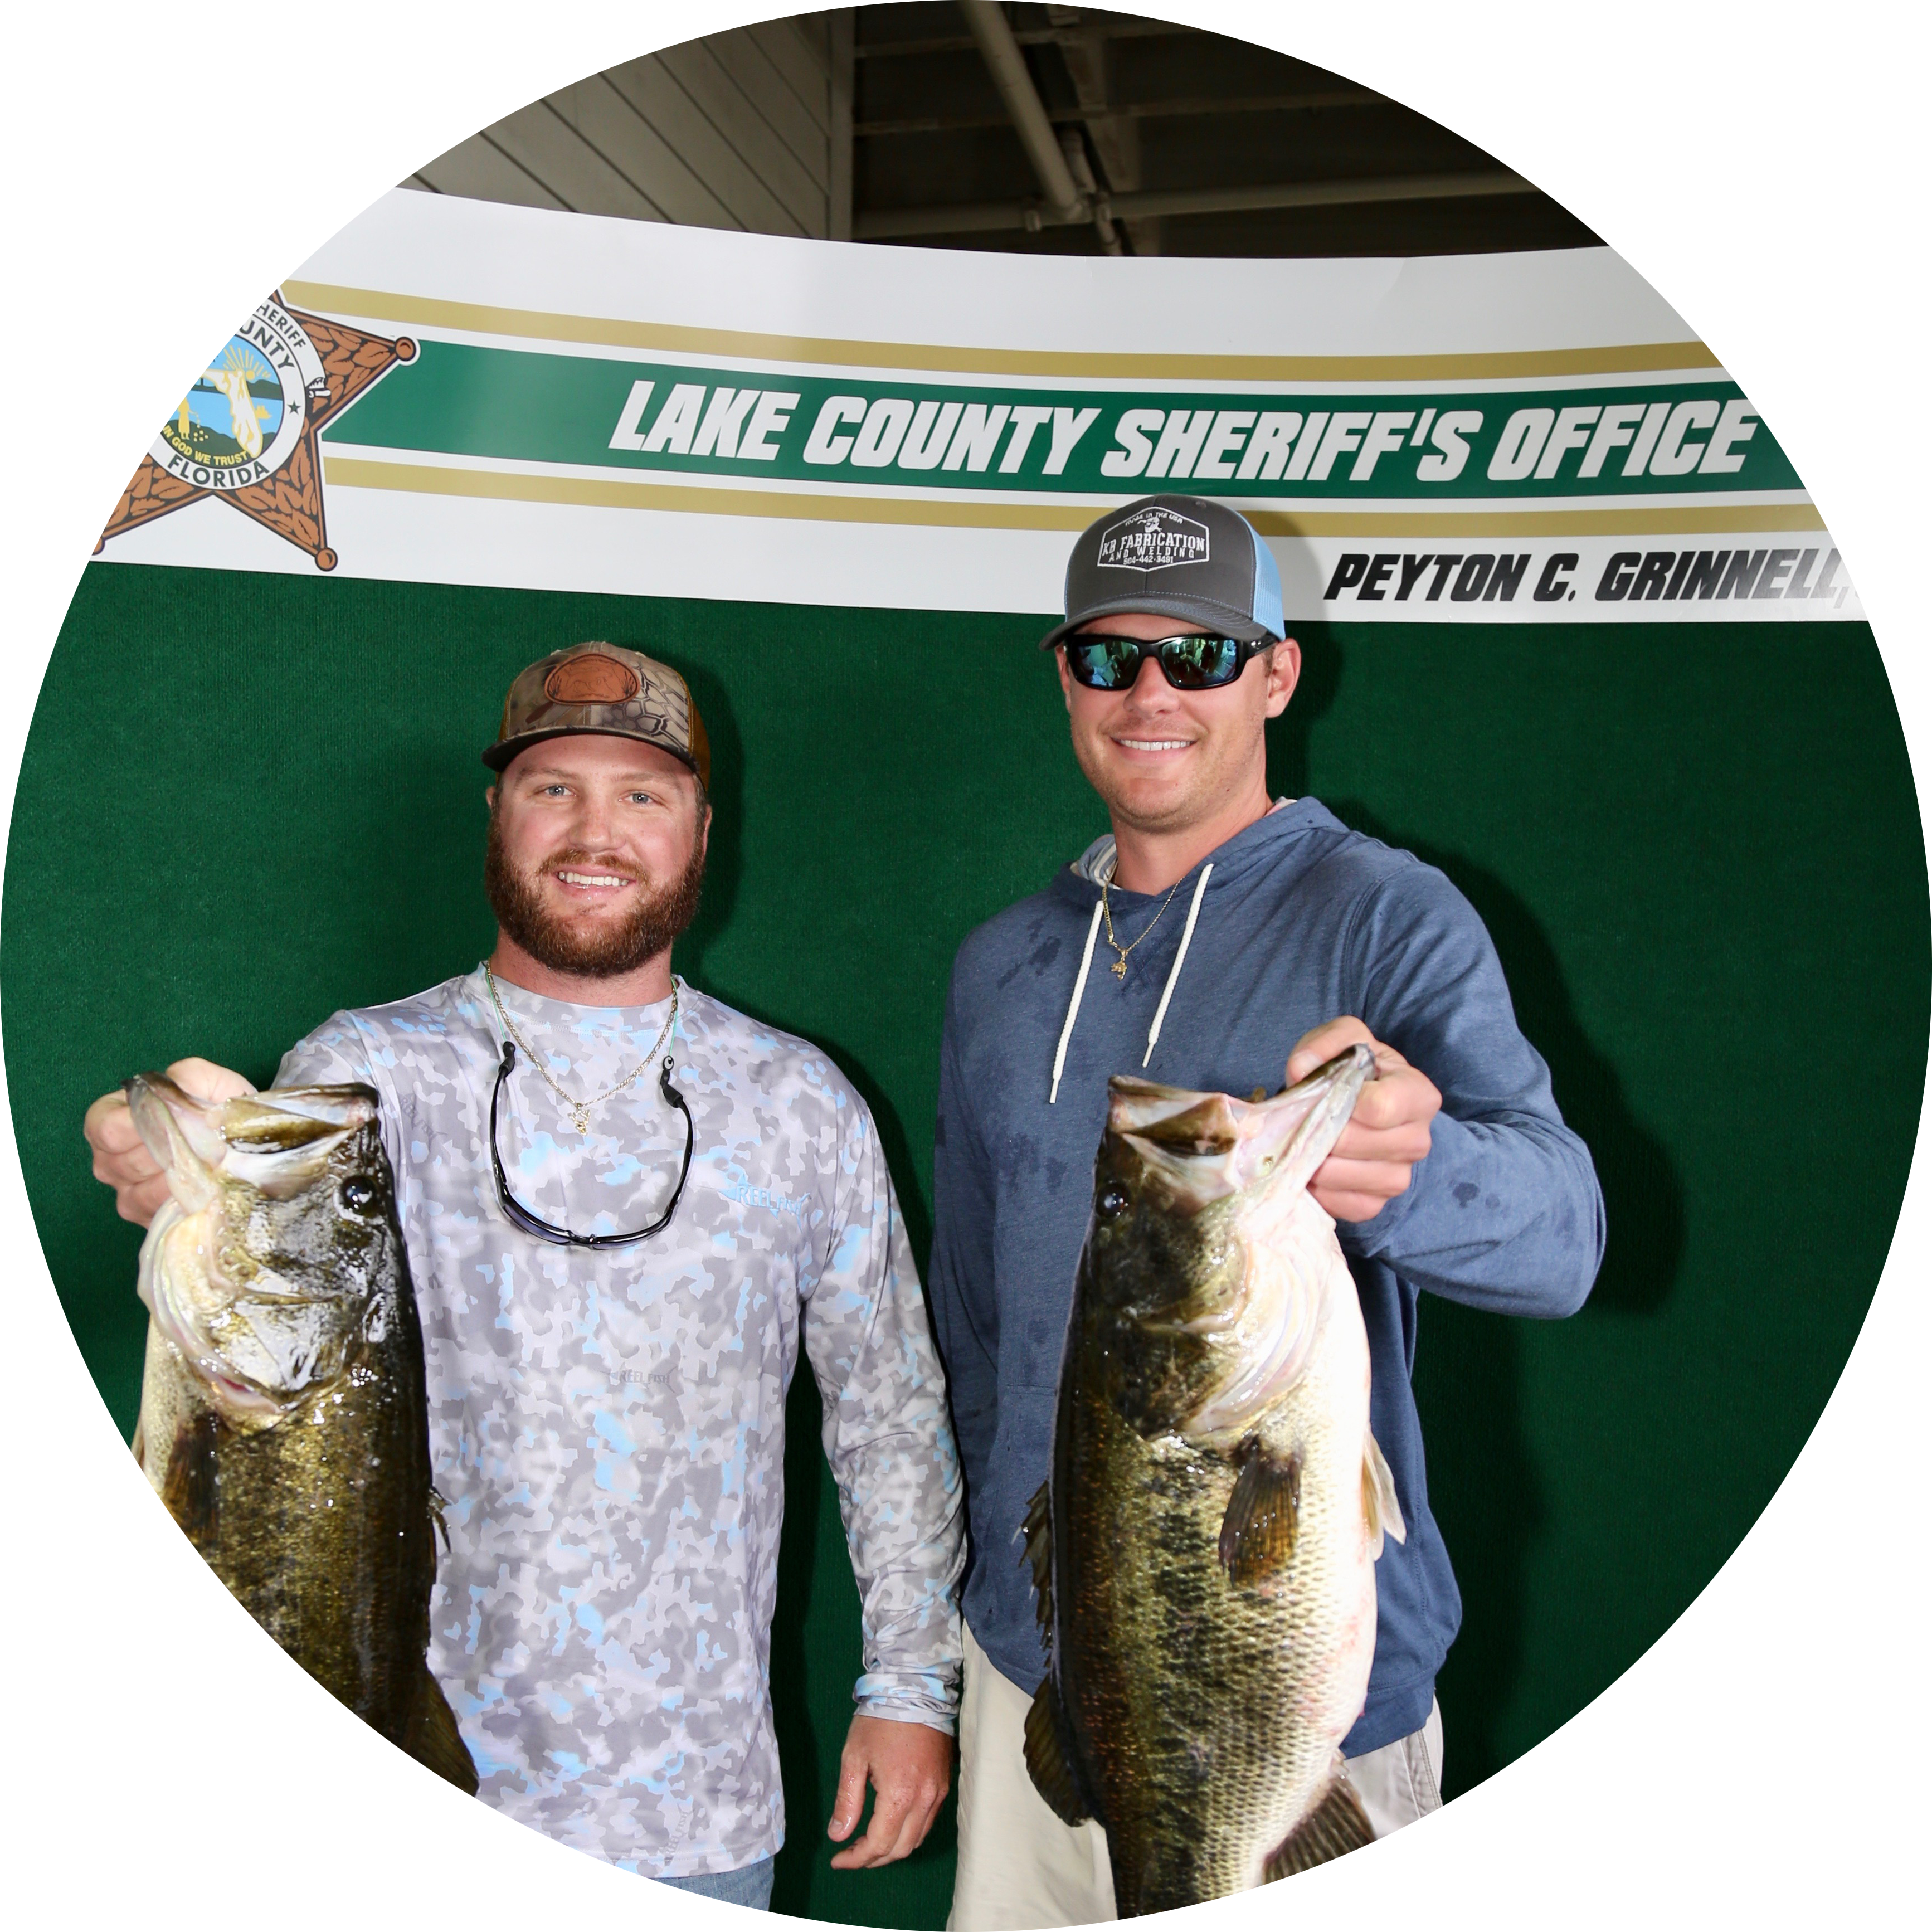 LCSO Bass Tournament, etc.